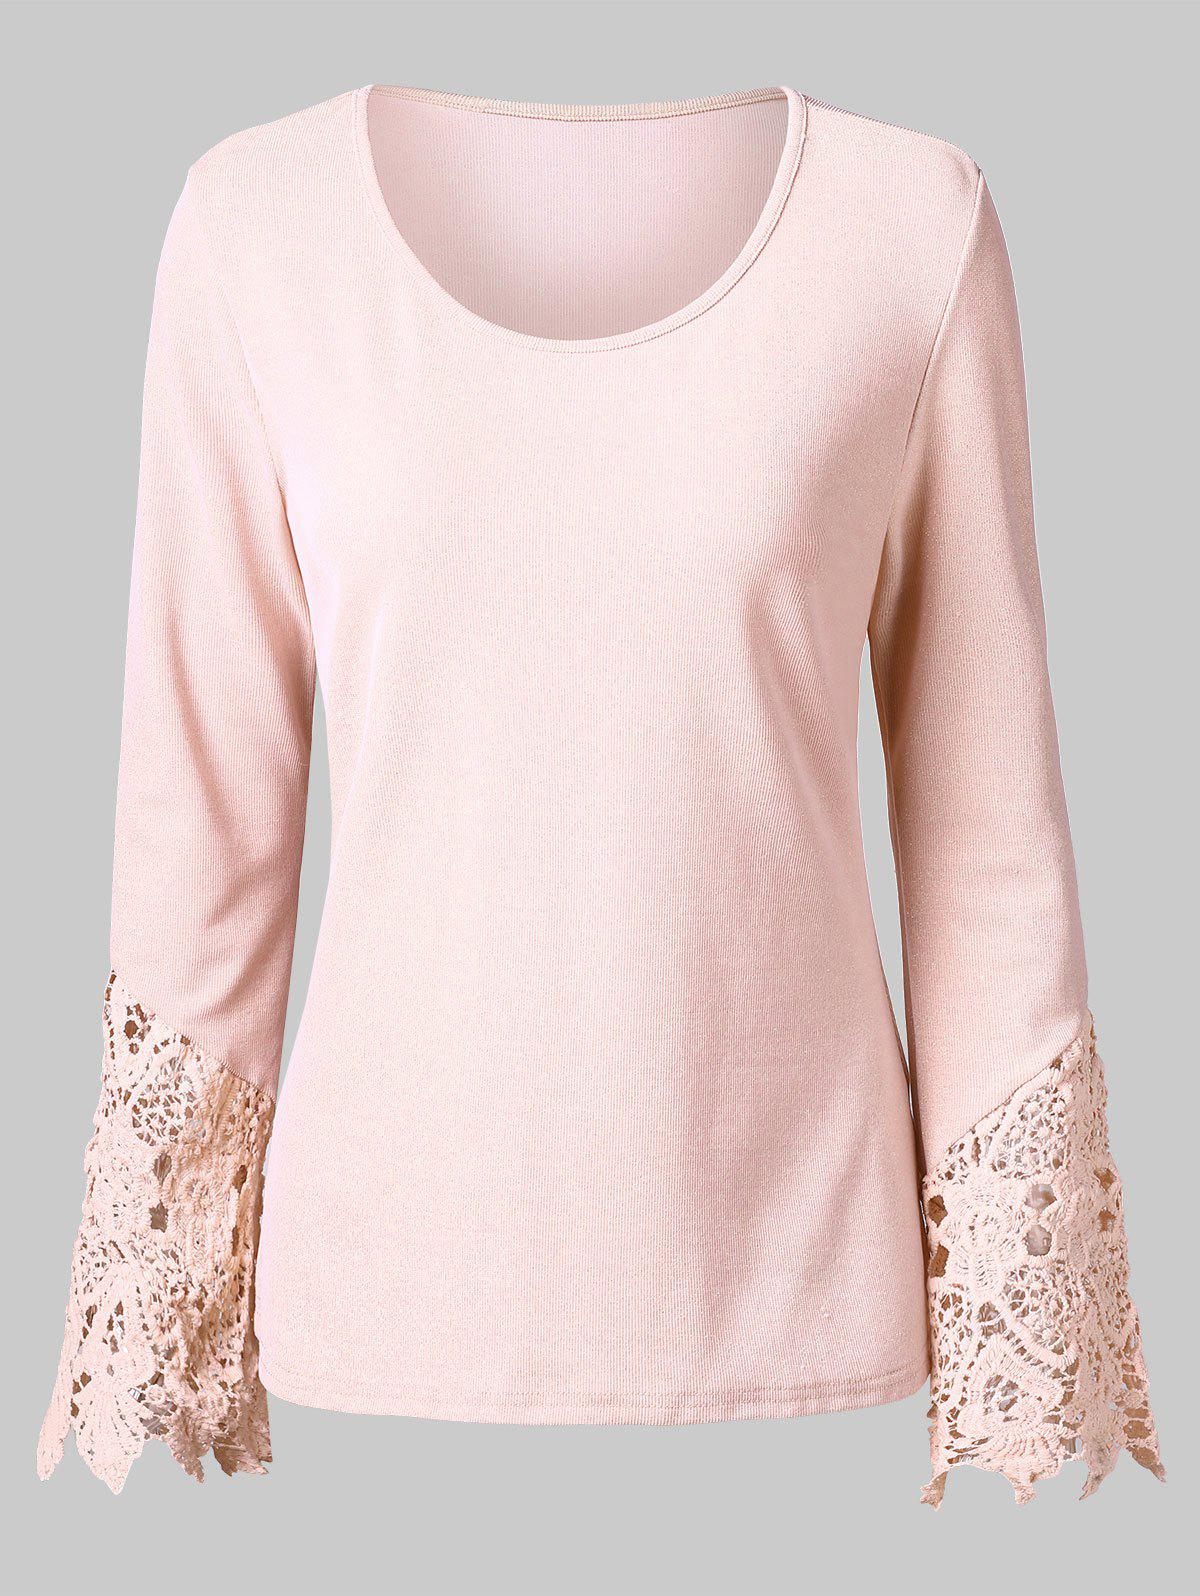 Lace Panel Long Sleeve T-shirt - LIGHT PINK L